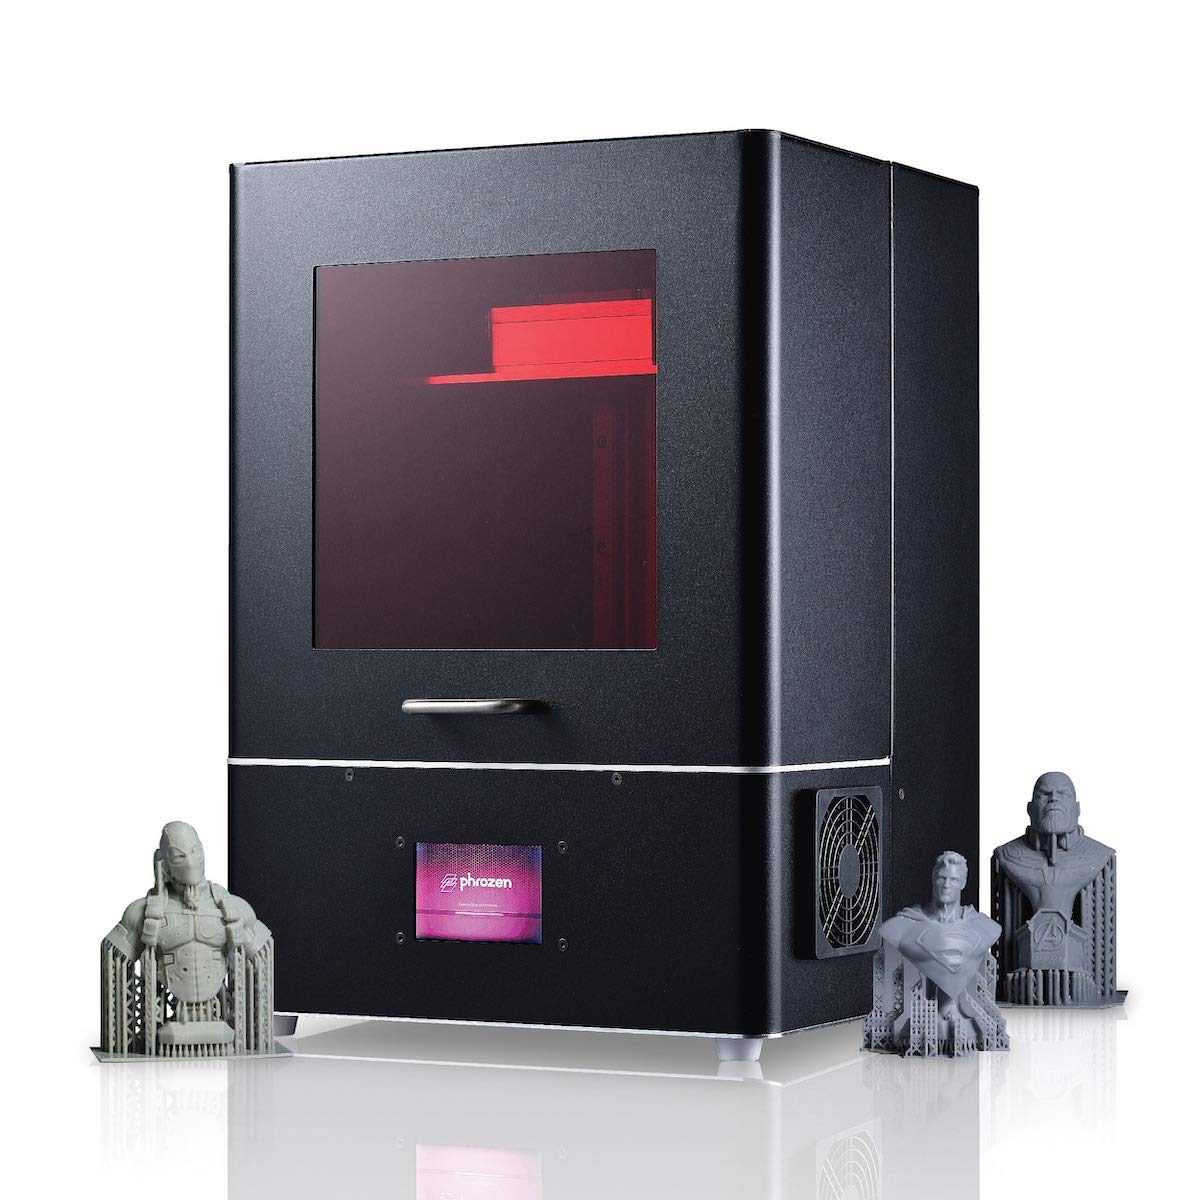 71Kc0ccBC1L. SL1200 2 - Best Resin 3D Printers 2020 [User Rated]